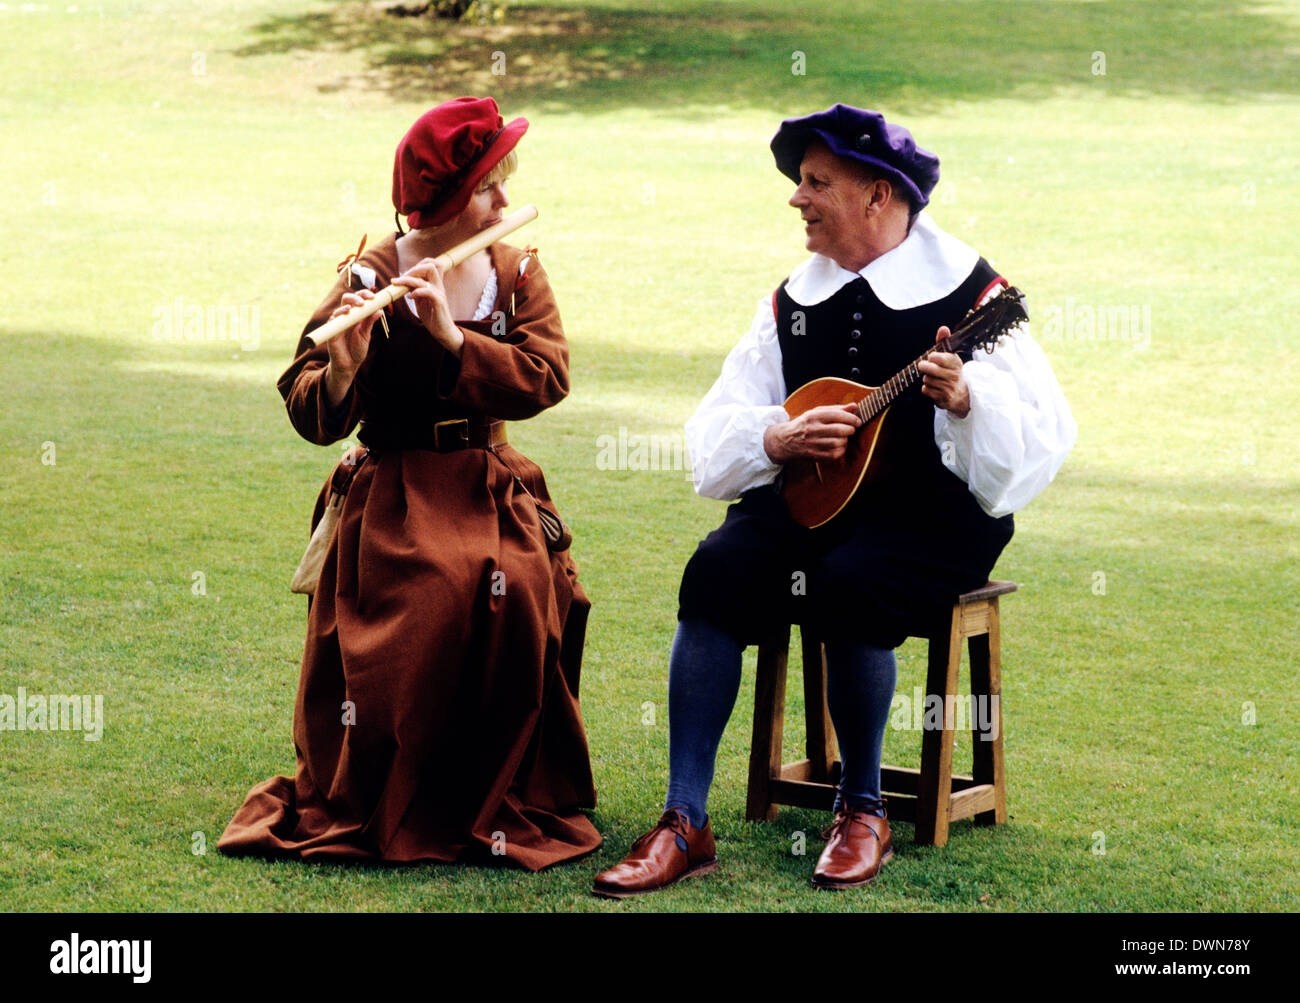 Stuart Period Musicians, early 17th Century, historical re-enactment music musical instrument instruments fashion fashions costume costumes musician England UK - Stock Image